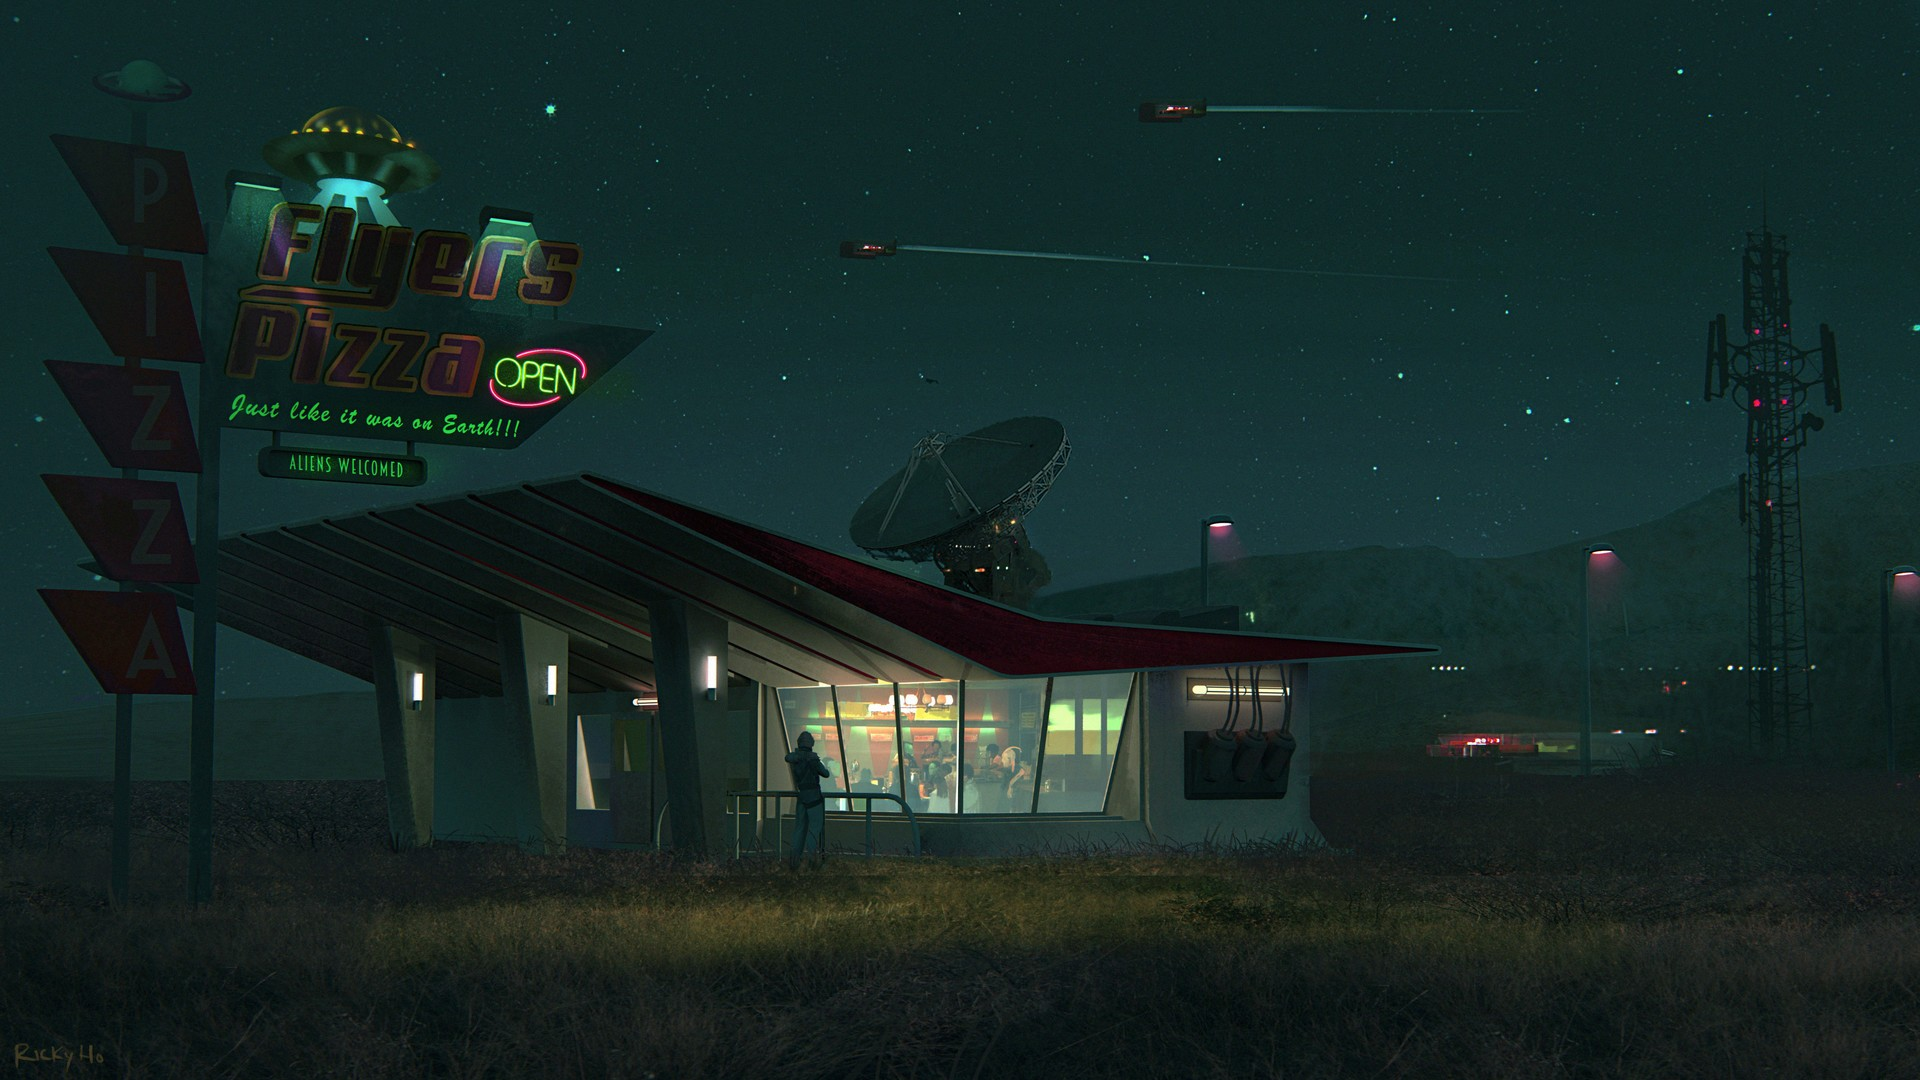 General 1920x1080 digital art science fiction pizza spaceship satellite night house stars neon text